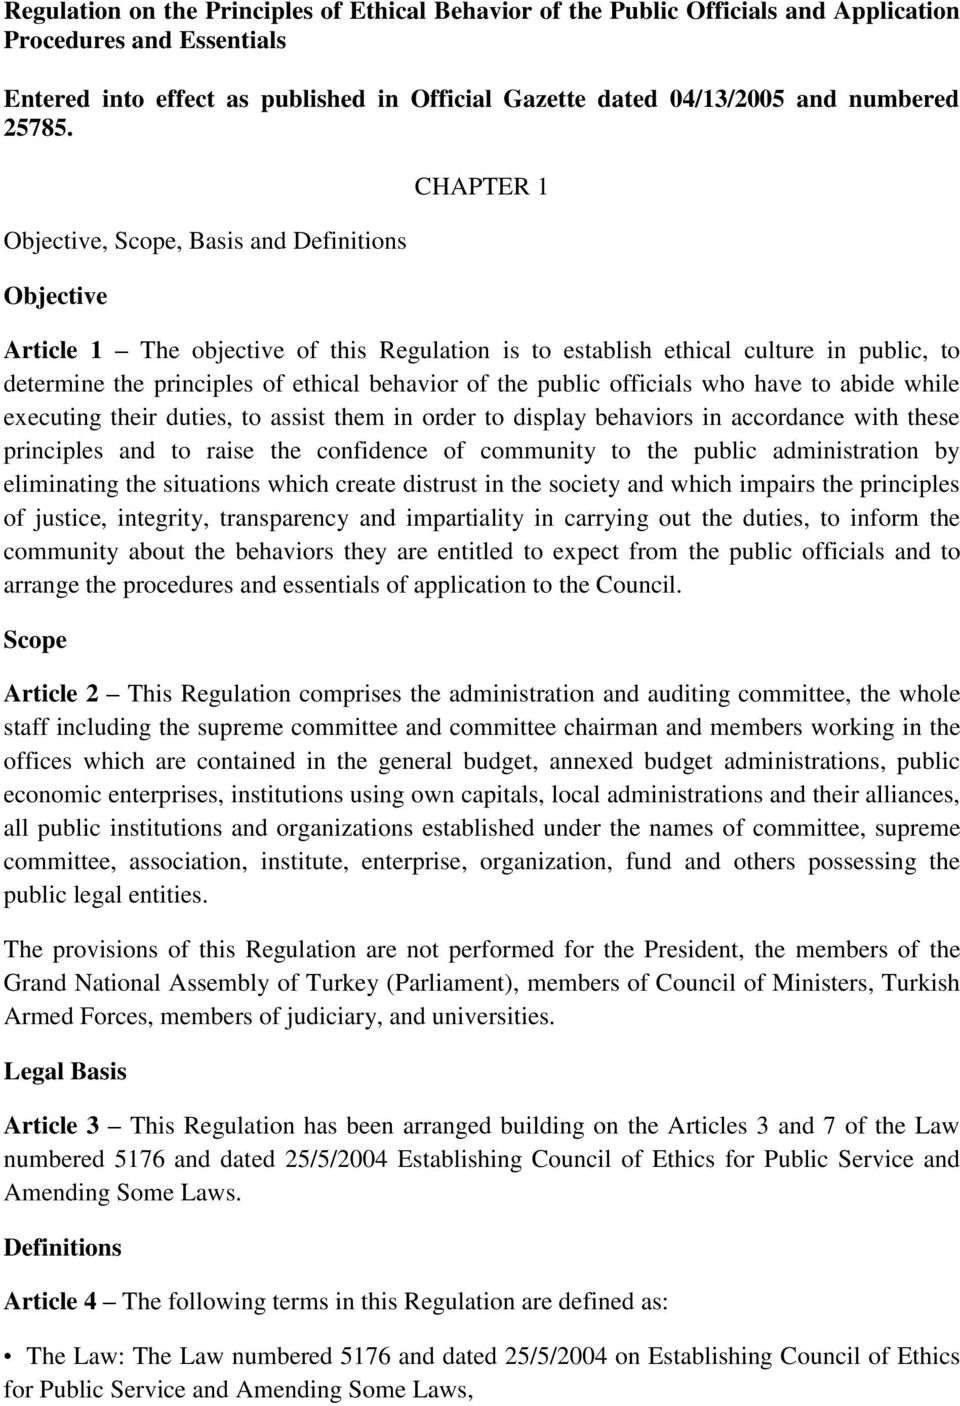 Objective, Scope, Basis and Definitions Objective CHAPTER 1 Article 1 The objective of this Regulation is to establish ethical culture in public, to determine the principles of ethical behavior of